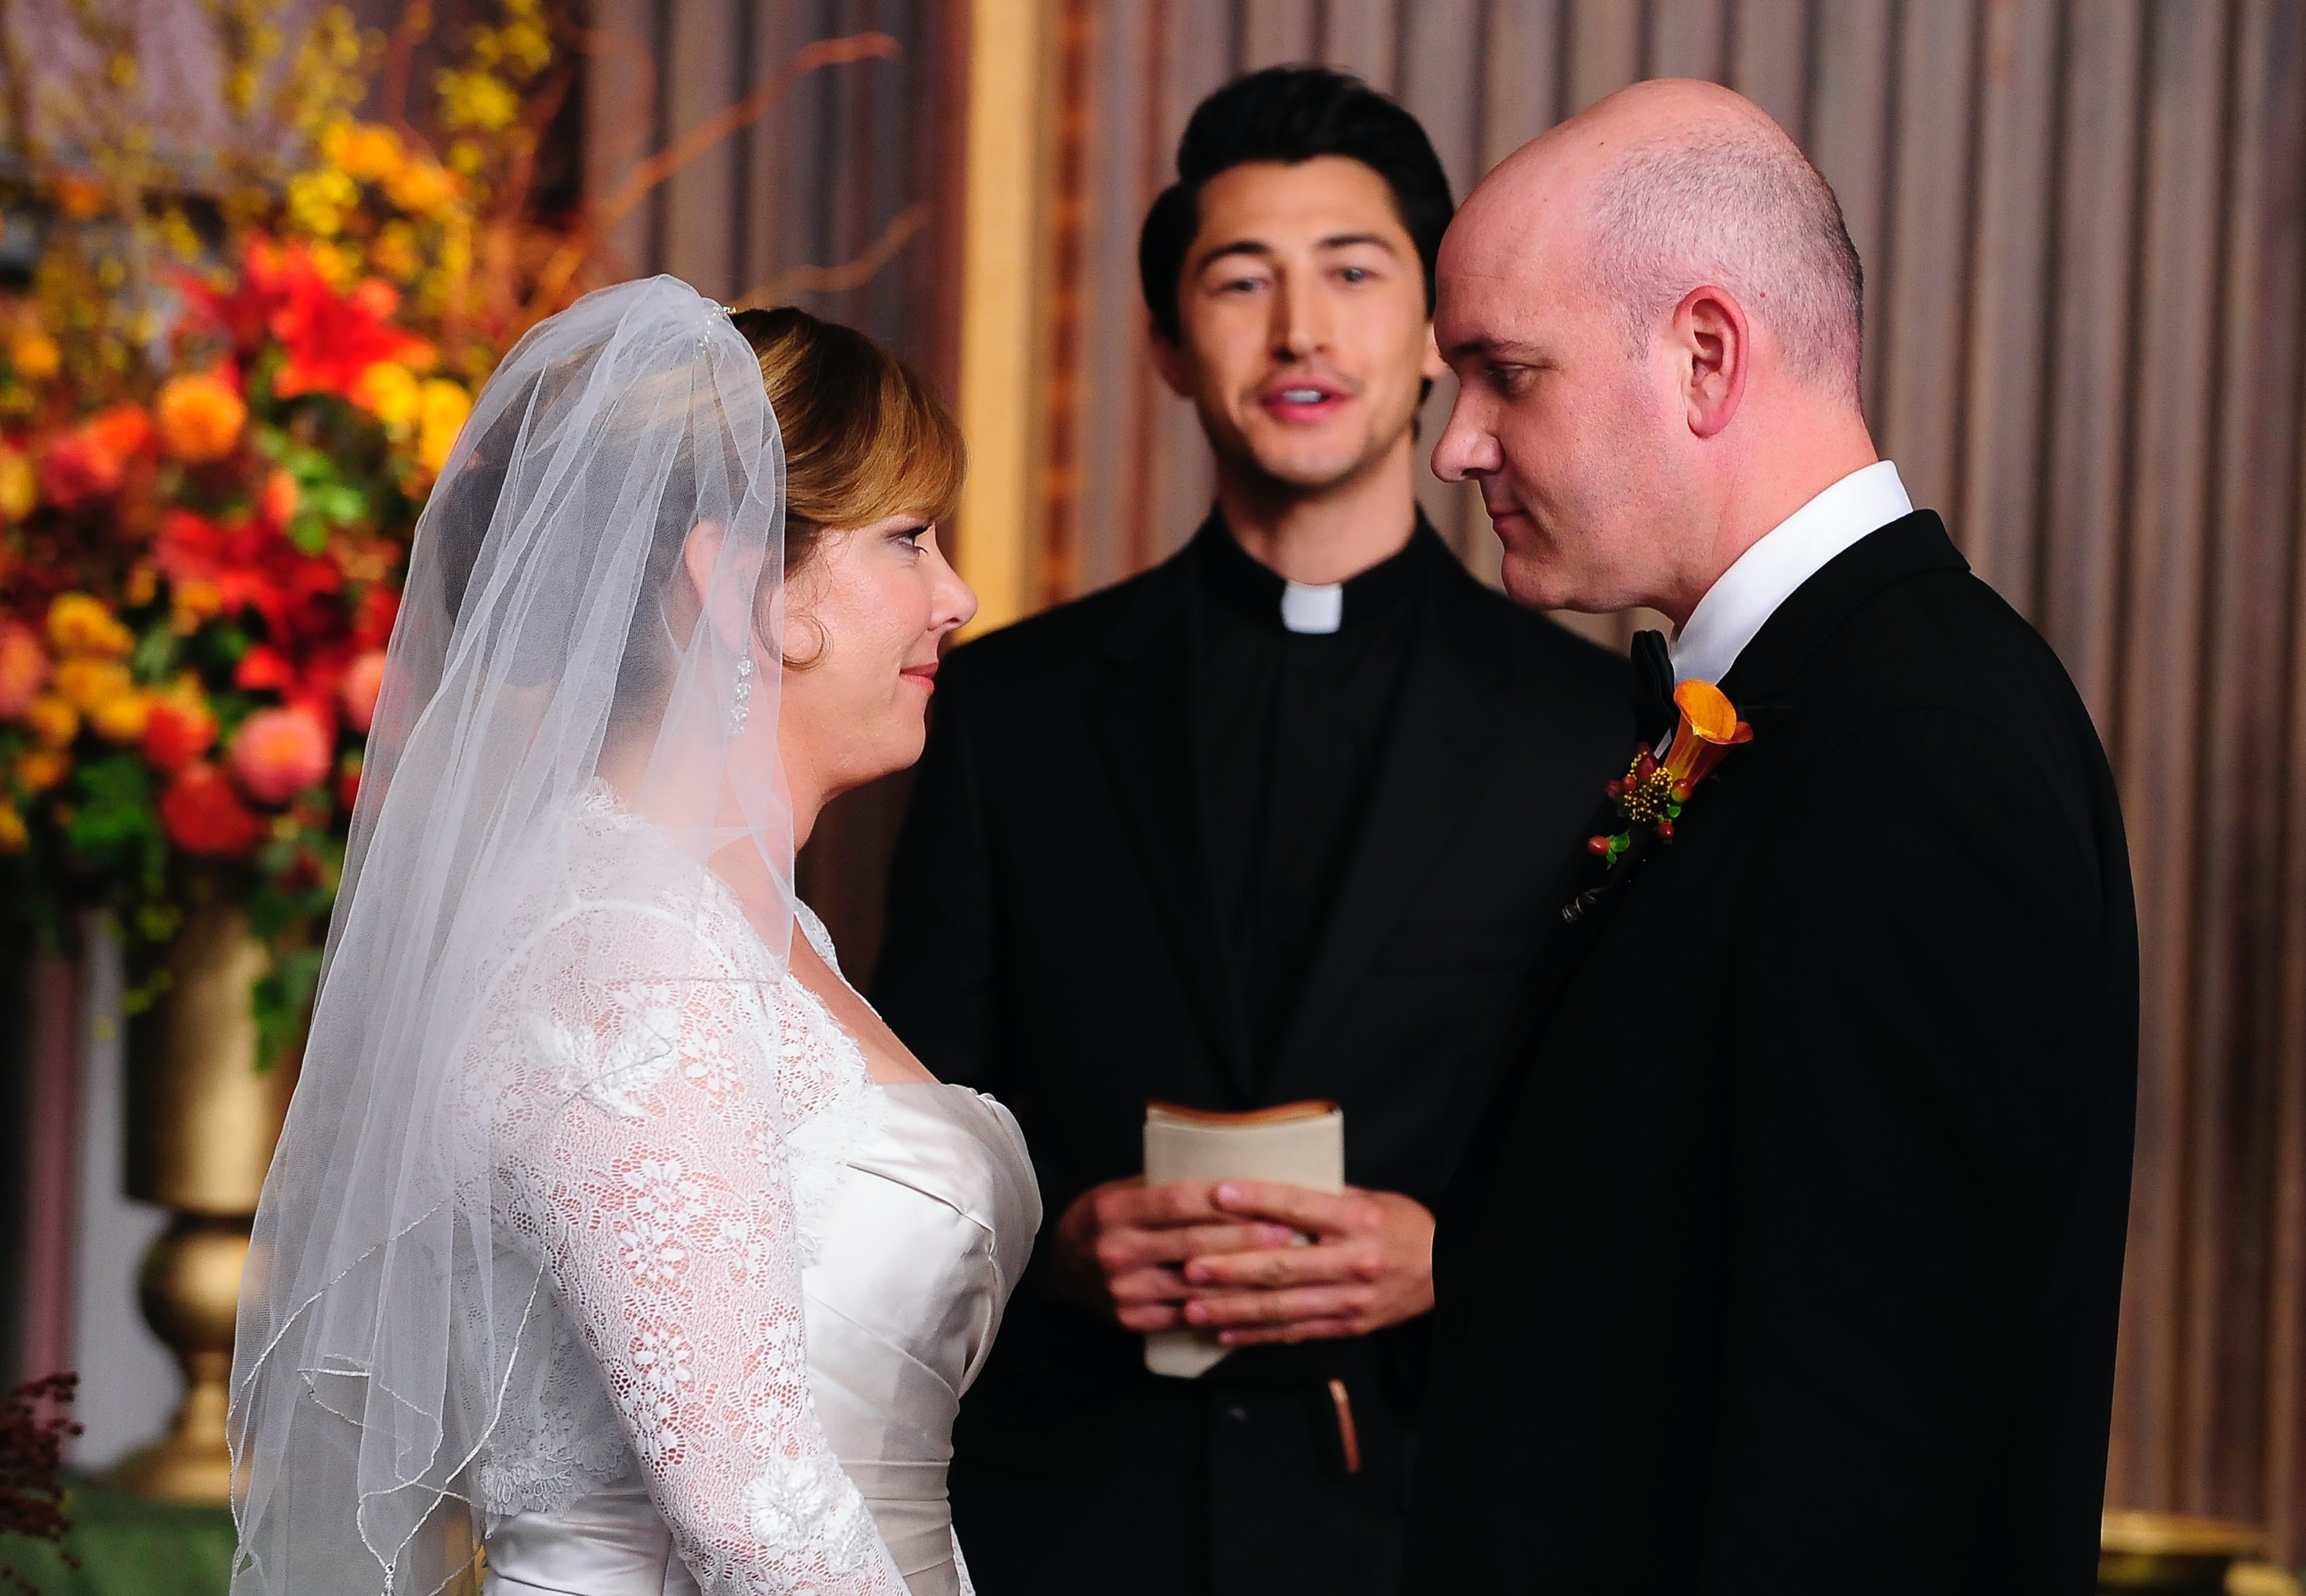 8 Glee Weddings And Almost That Led Up Brittany Santanas Happily Ever After